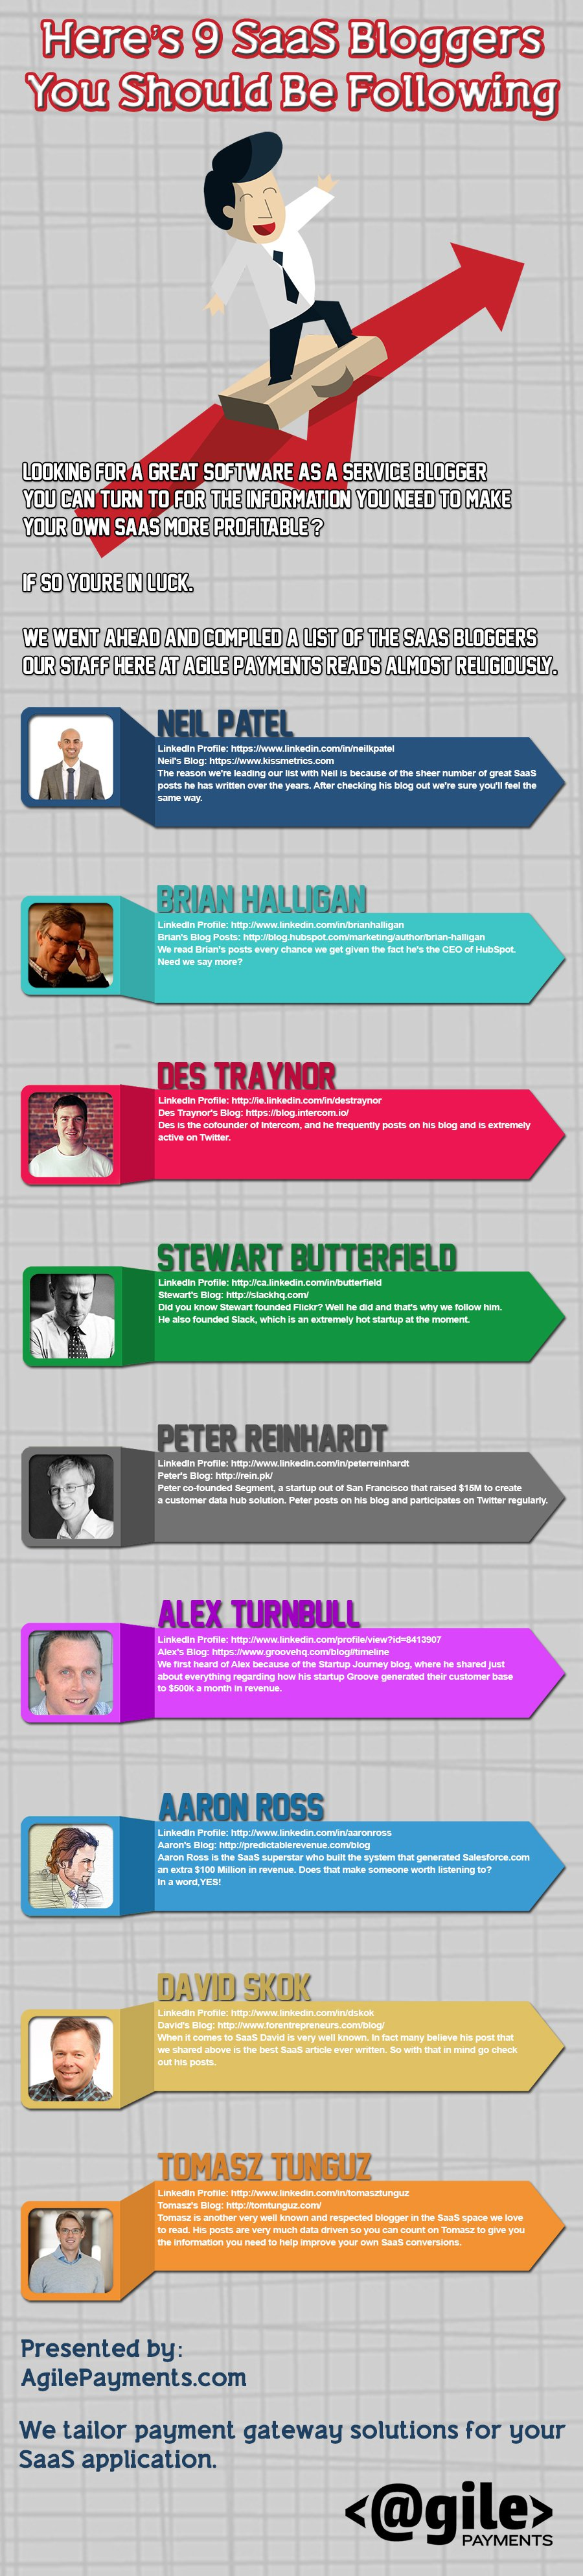 9 SaaS Bloggers To Follow Infographic